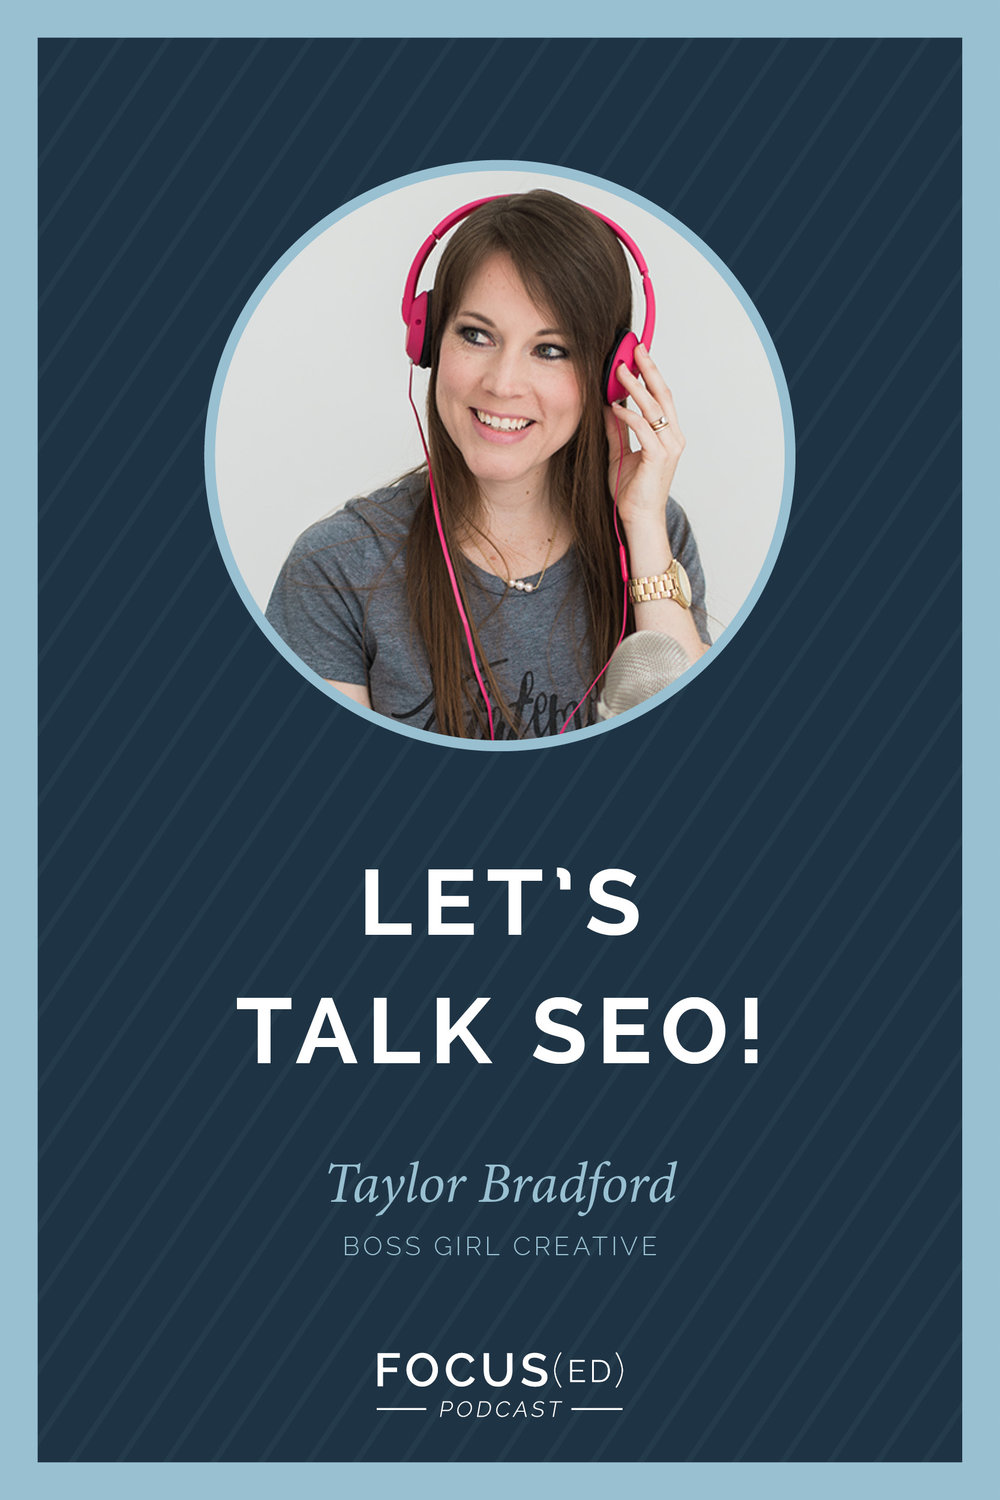 Super Simple SEO for Your Business | Focus(ed) Podcast, Taylor Bradford